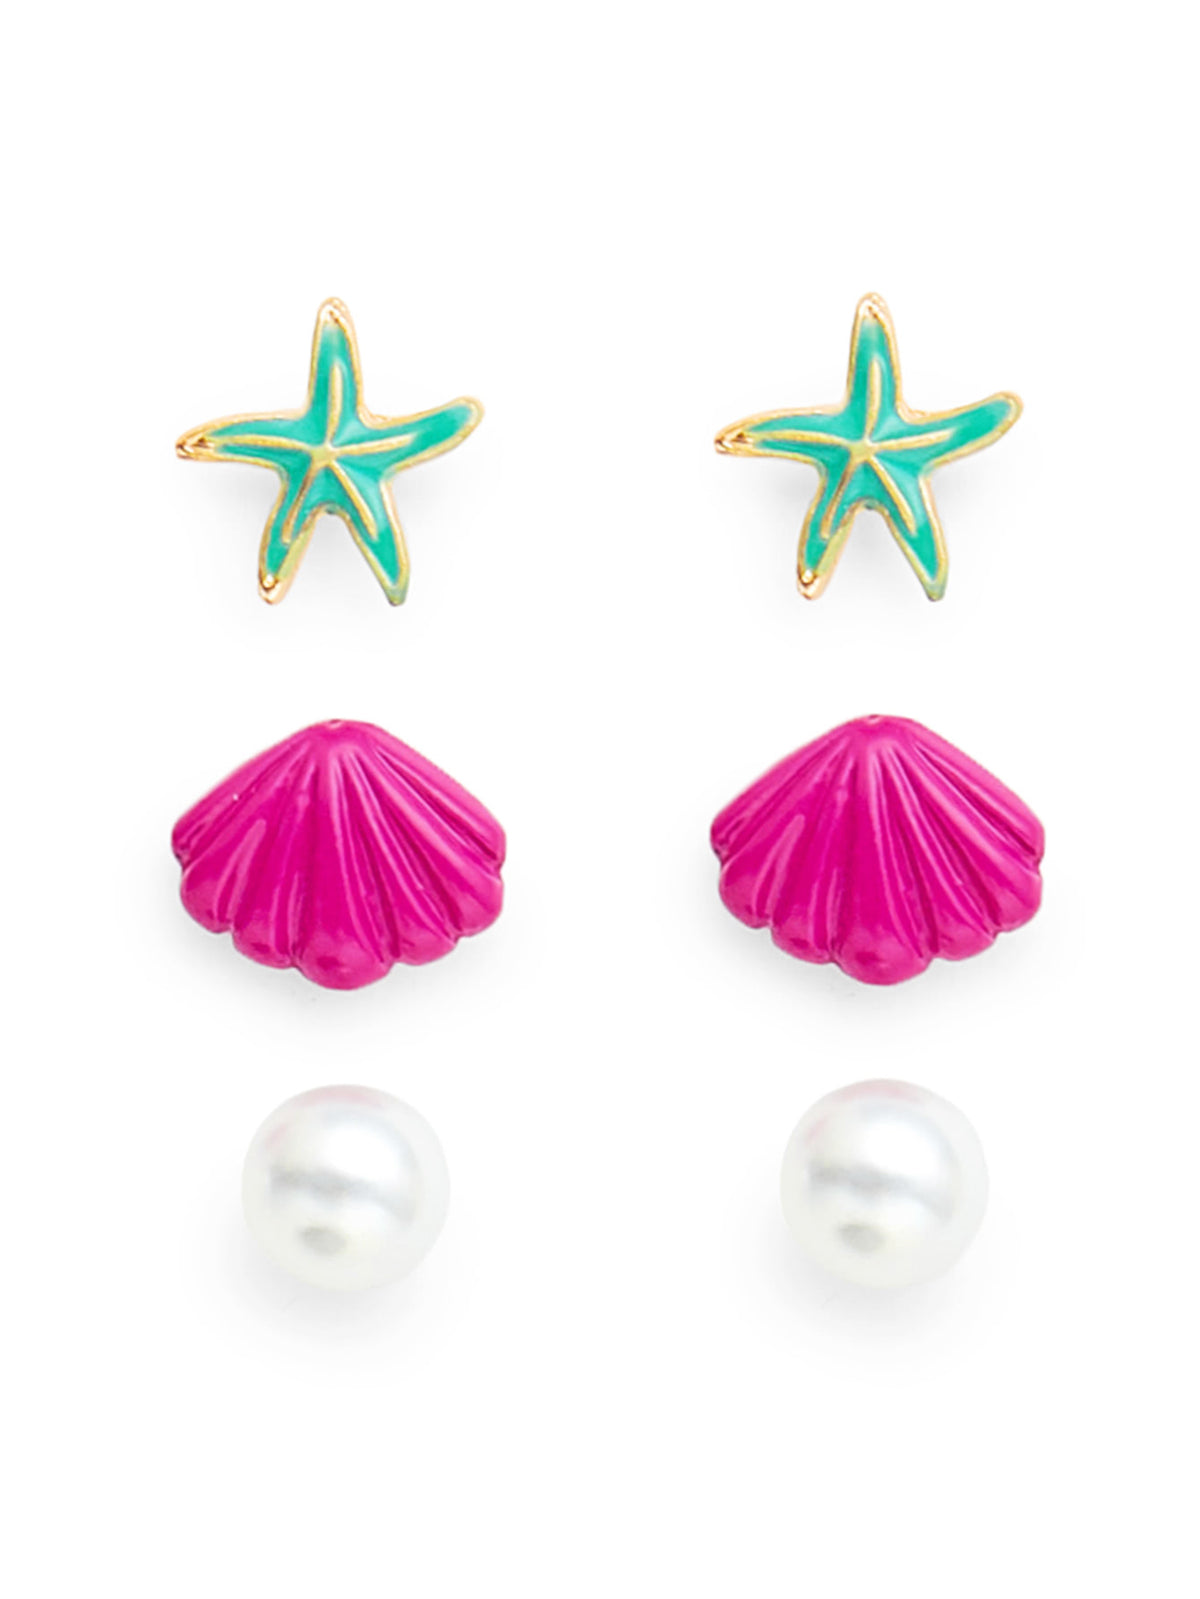 Starfish and Scallop Design Stud Earring Set